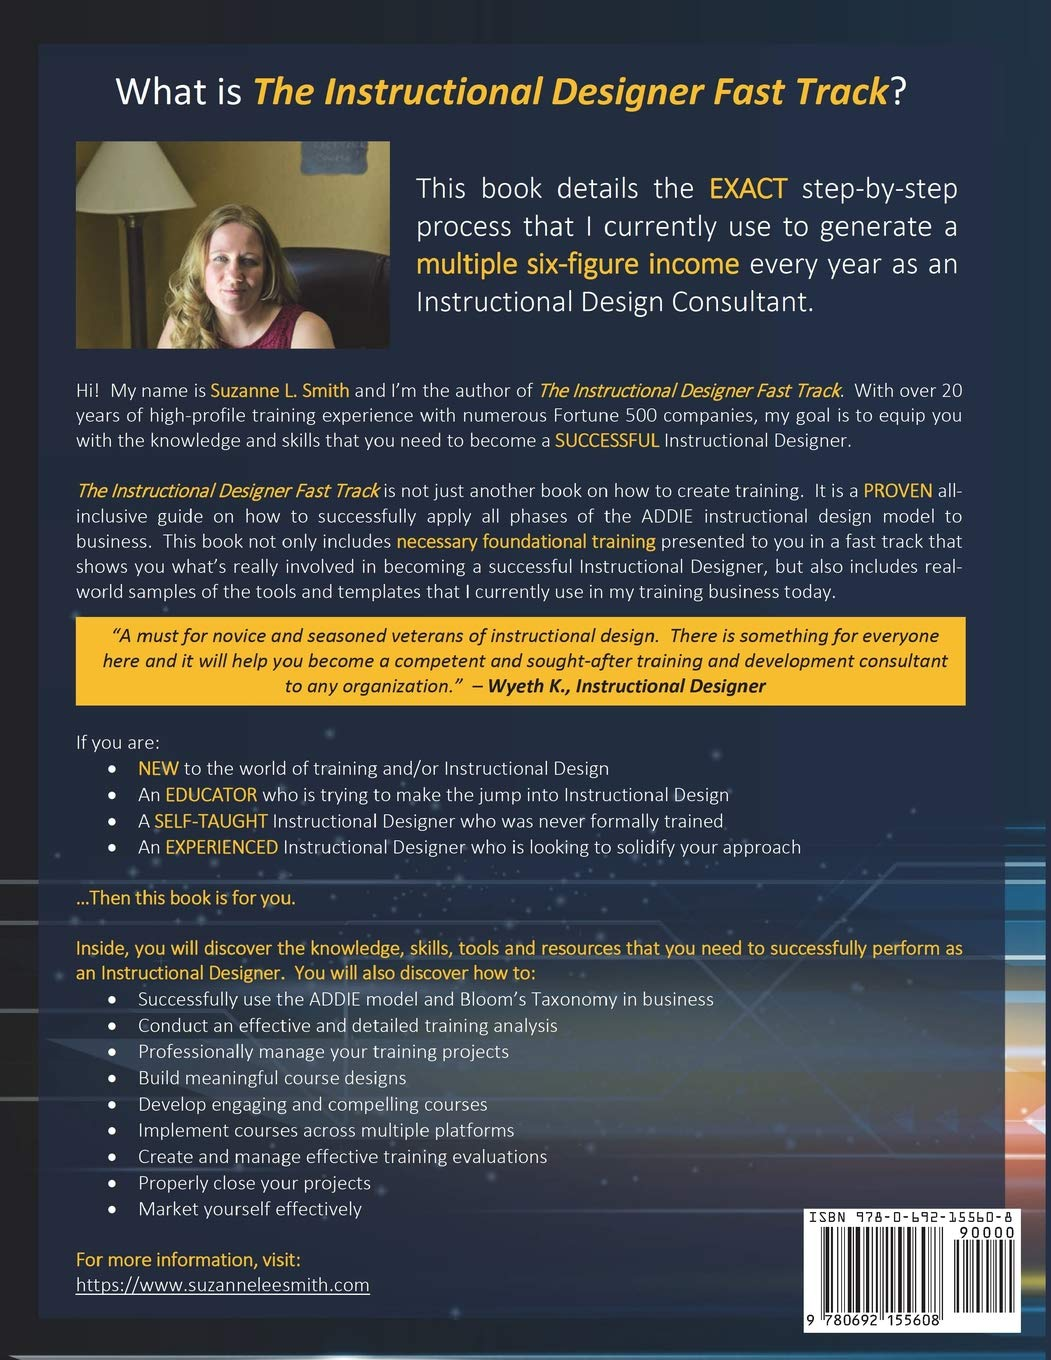 The Instructional Designer Fast Track Your Fast Track Guide To Becoming A Successful Instructional Designer Smith Suzanne L 9780692155608 Amazon Com Books